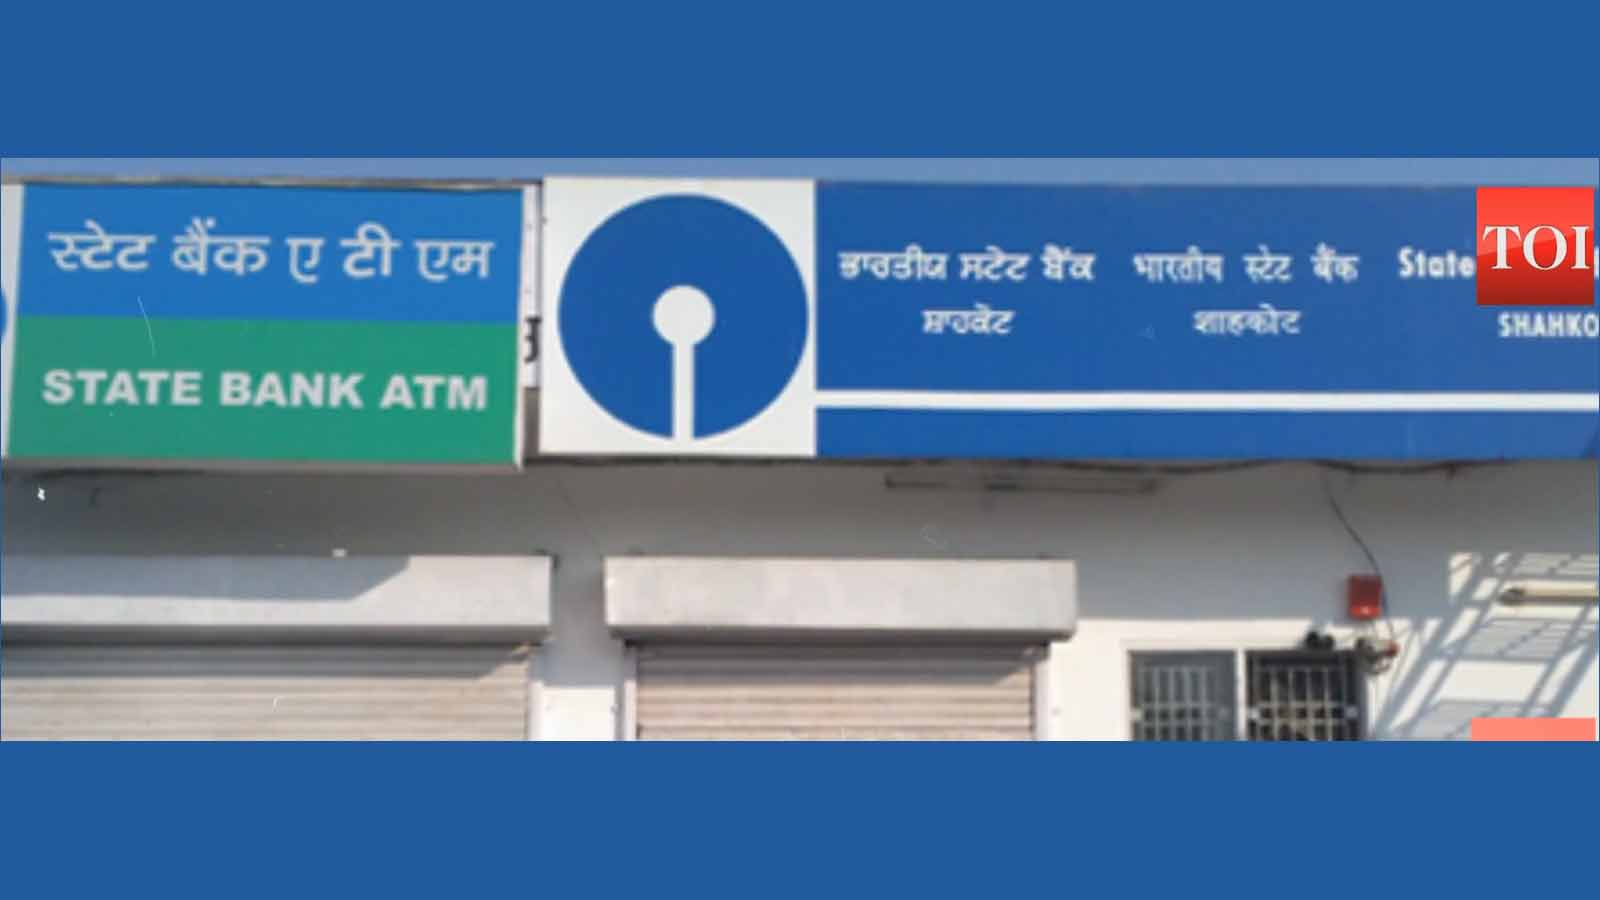 sbi-announces-cheaper-rates-for-home-and-auto-loan-borrowers